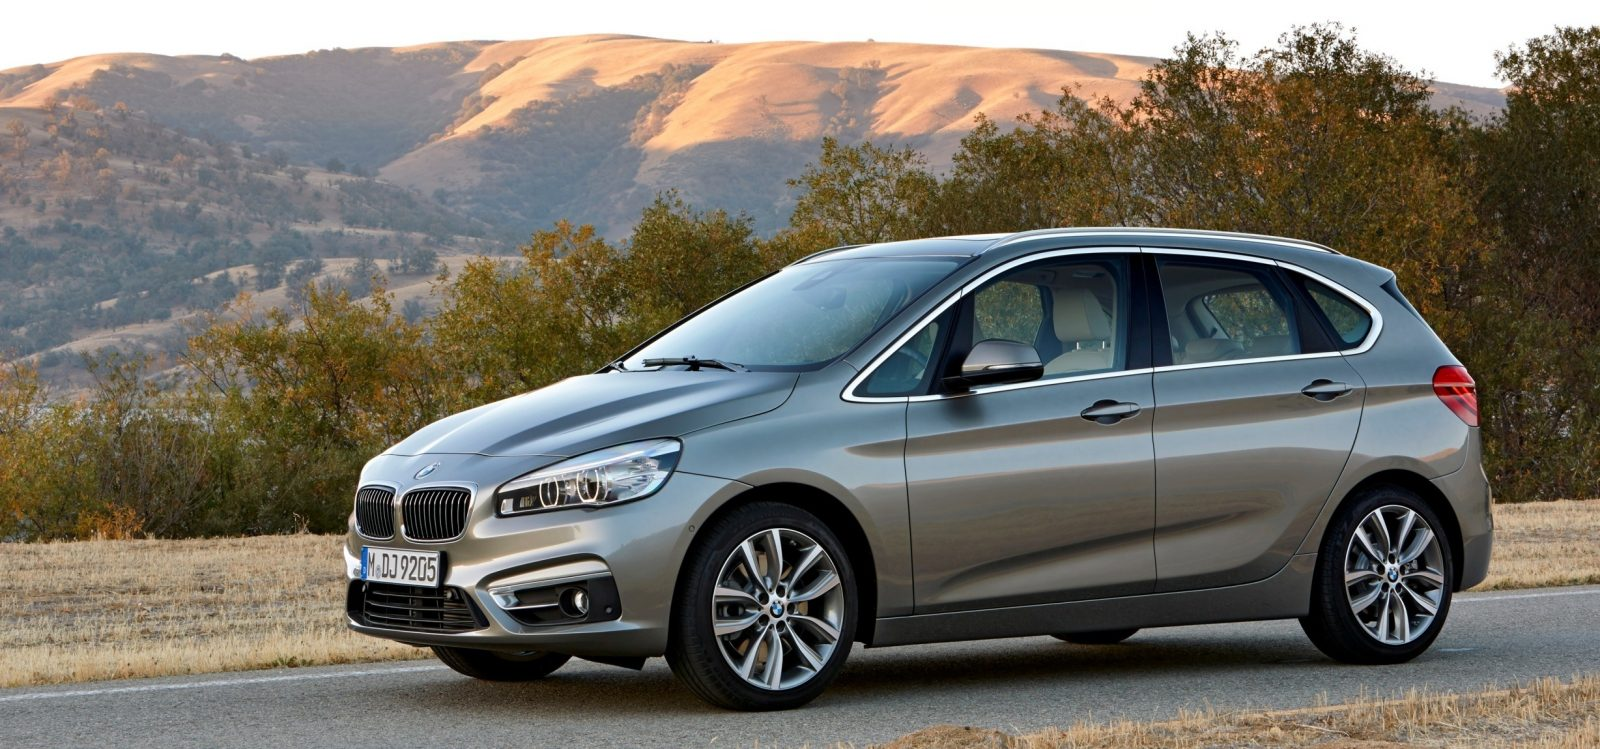 BMW_2_Series_Active_Tourer_BMW_51022